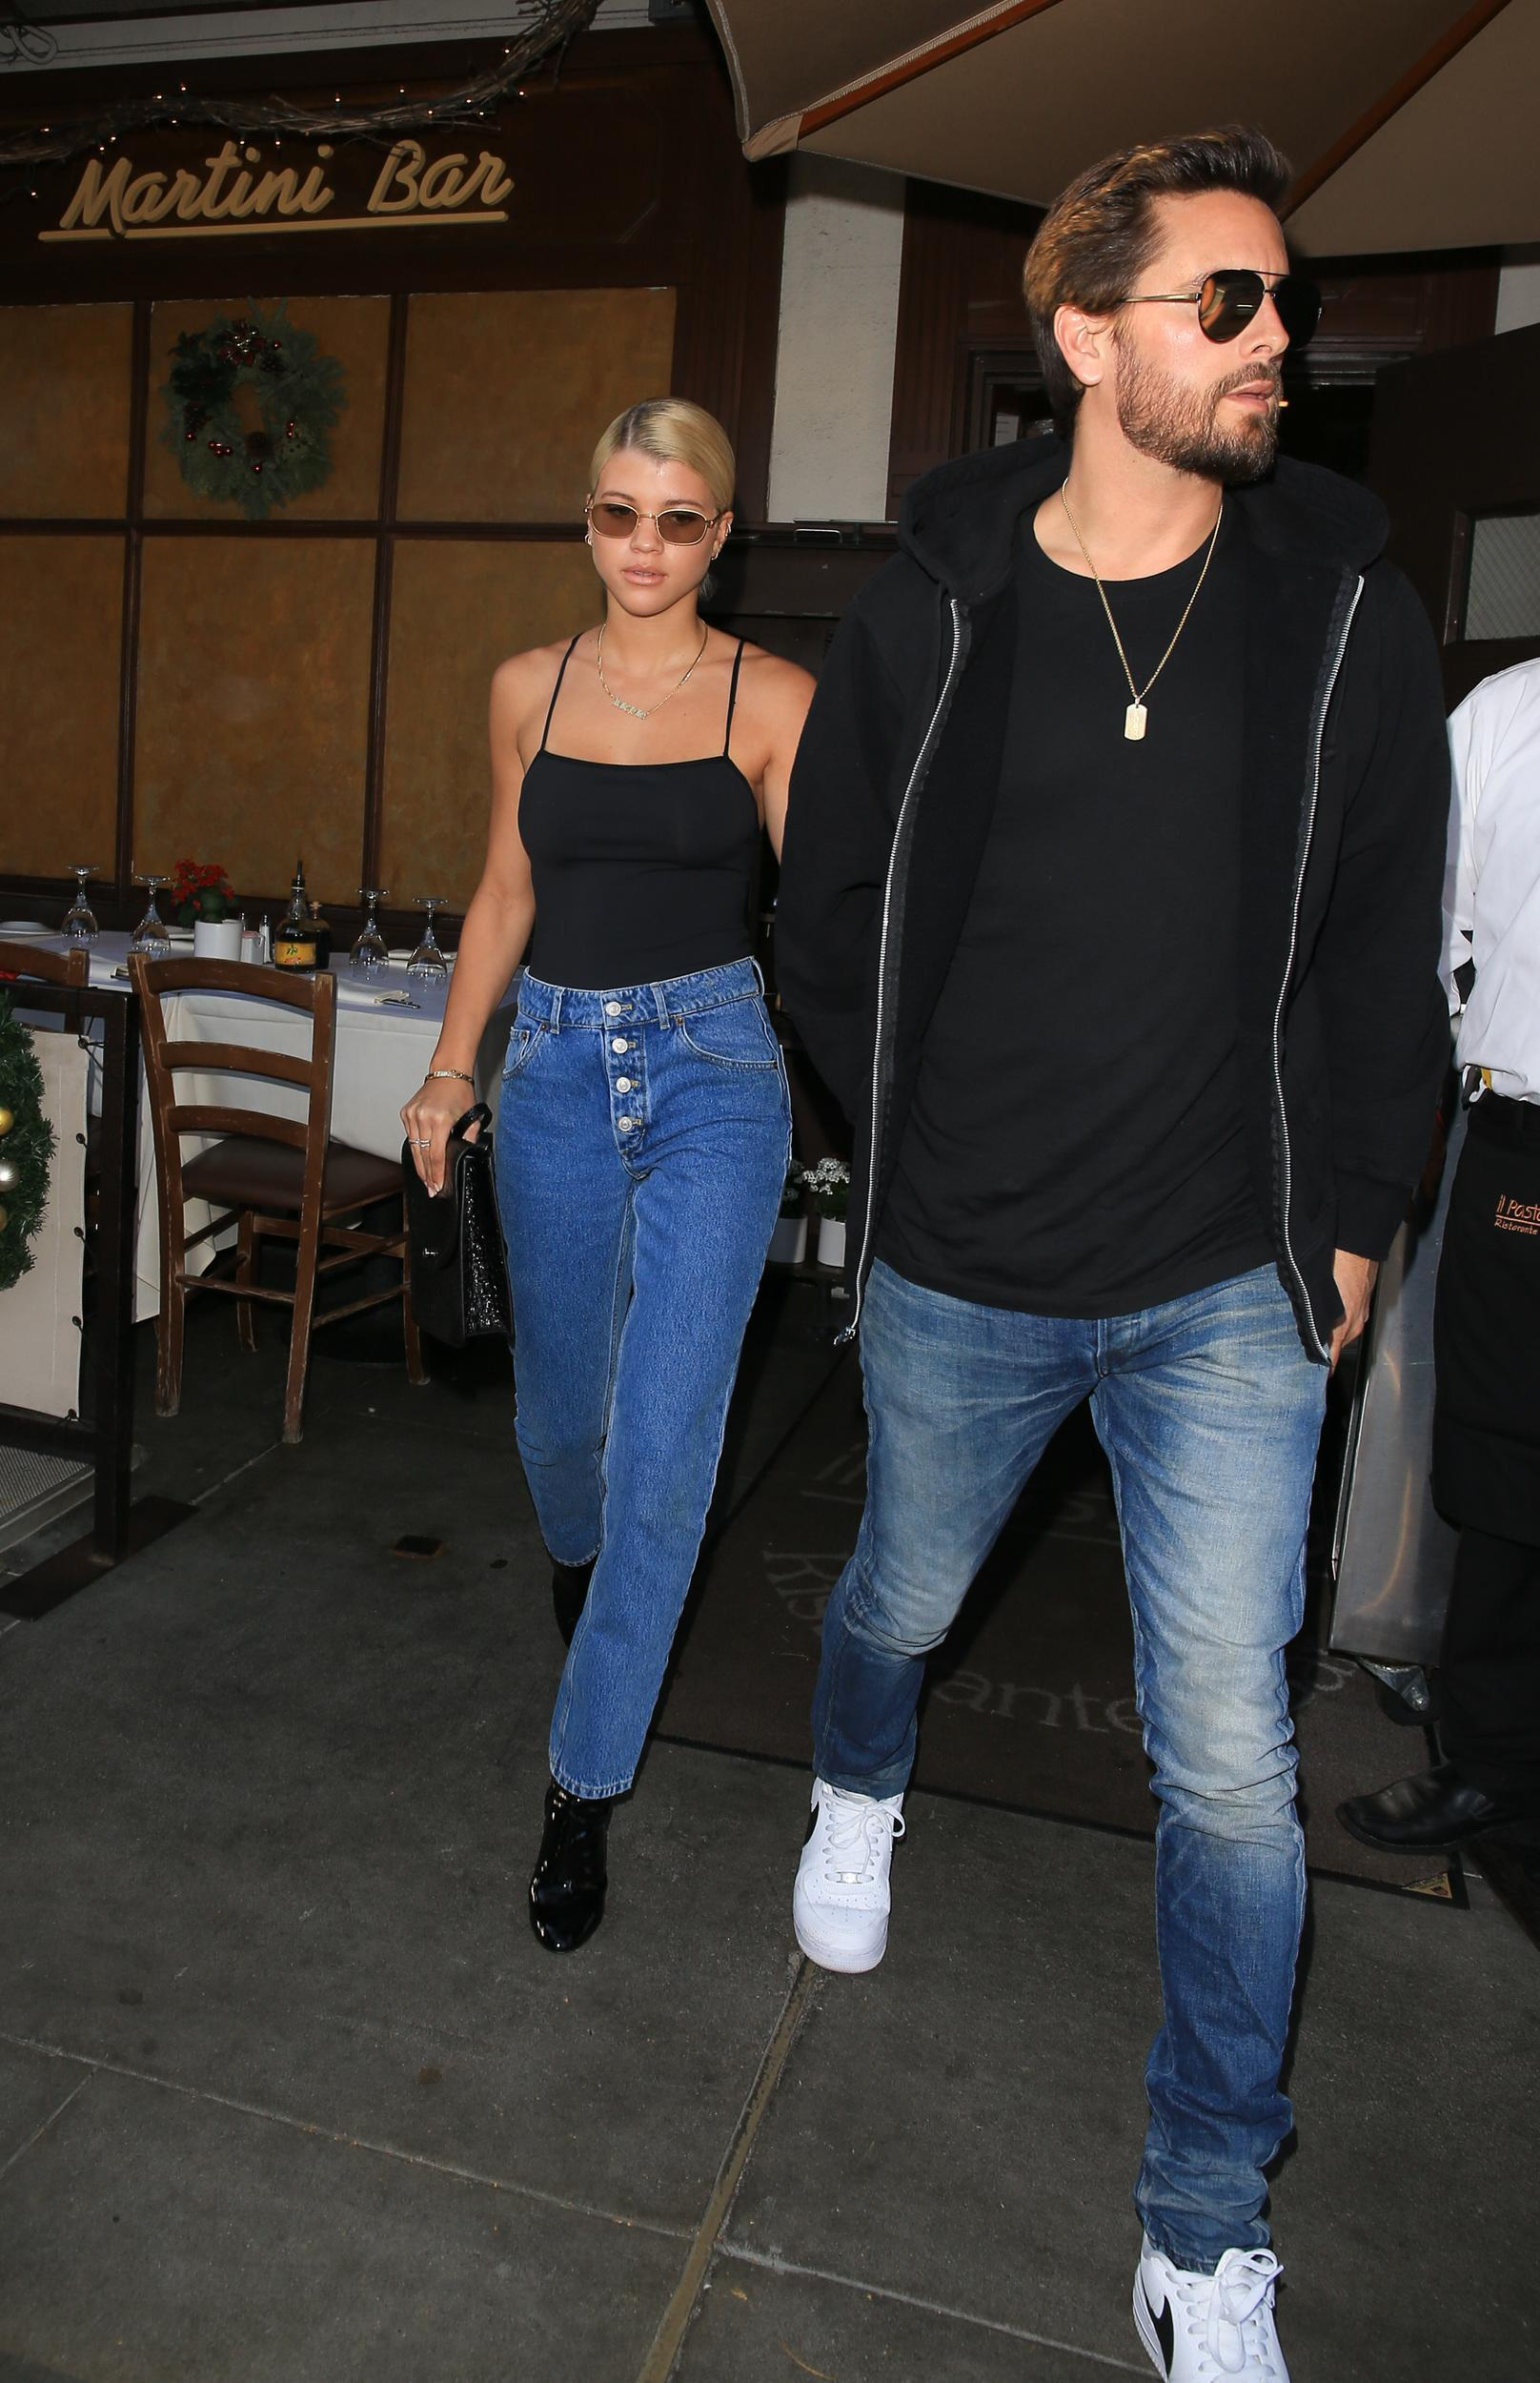 LOS ANGELES, CA - DECEMBER 13: Sofia Richie and Scott Disick are seen on December 13, 2017 in Los Angeles, California.  (Photo by Bauer-Griffin/GC Images)